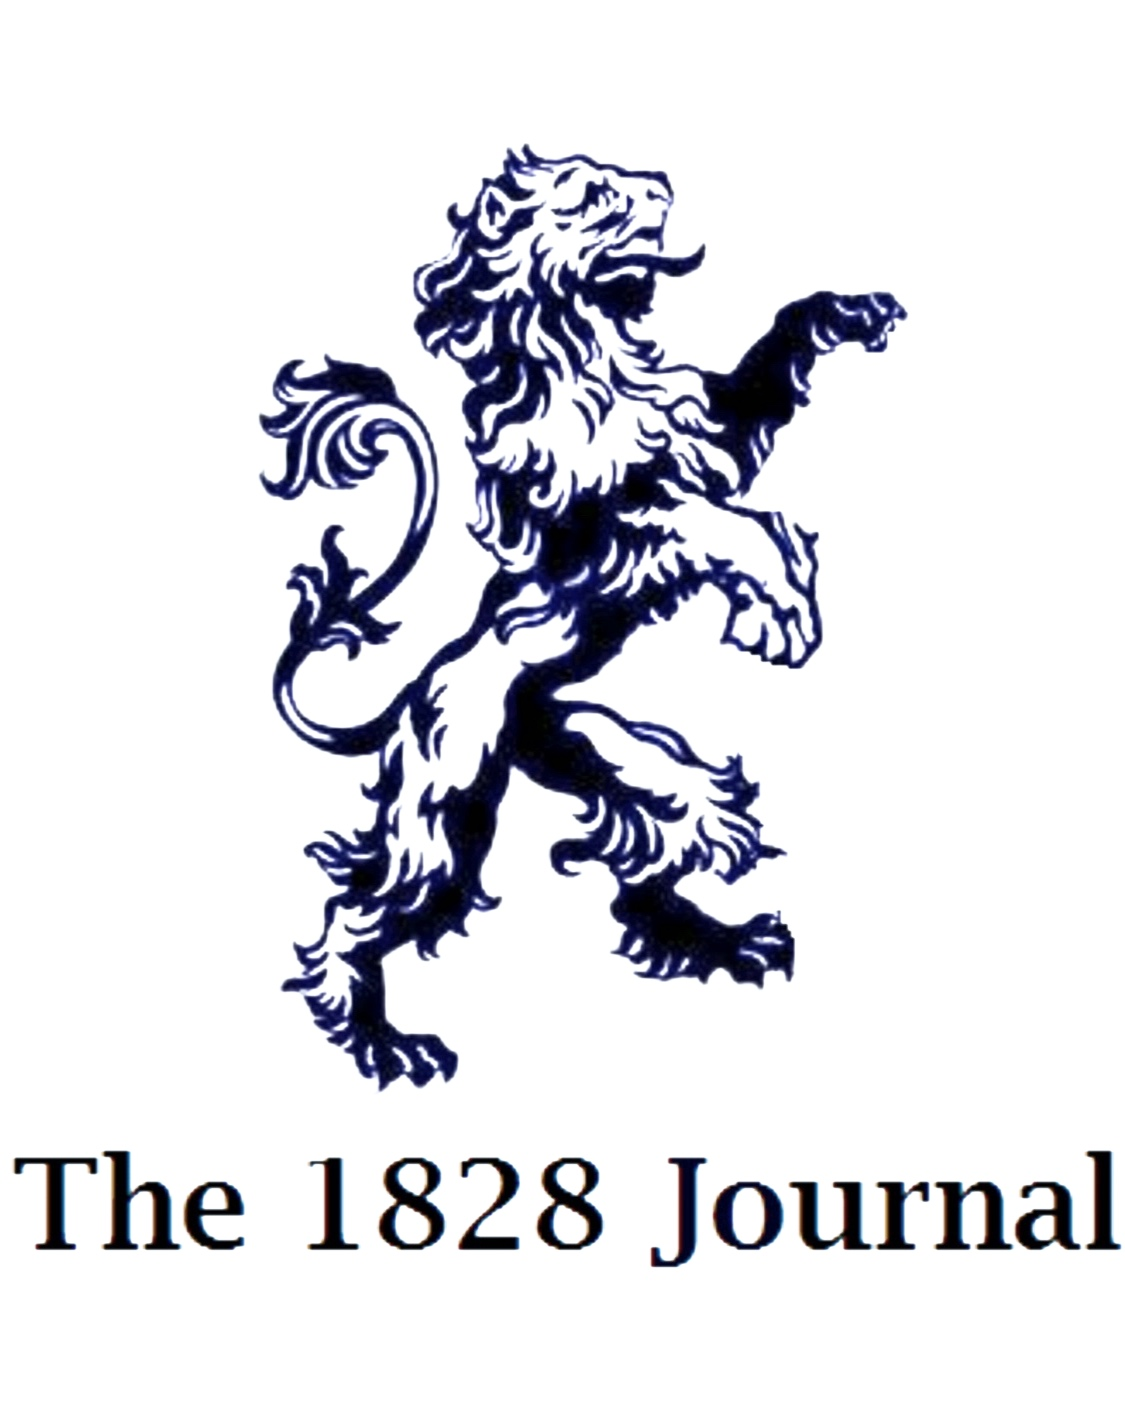 The 1828 Journal